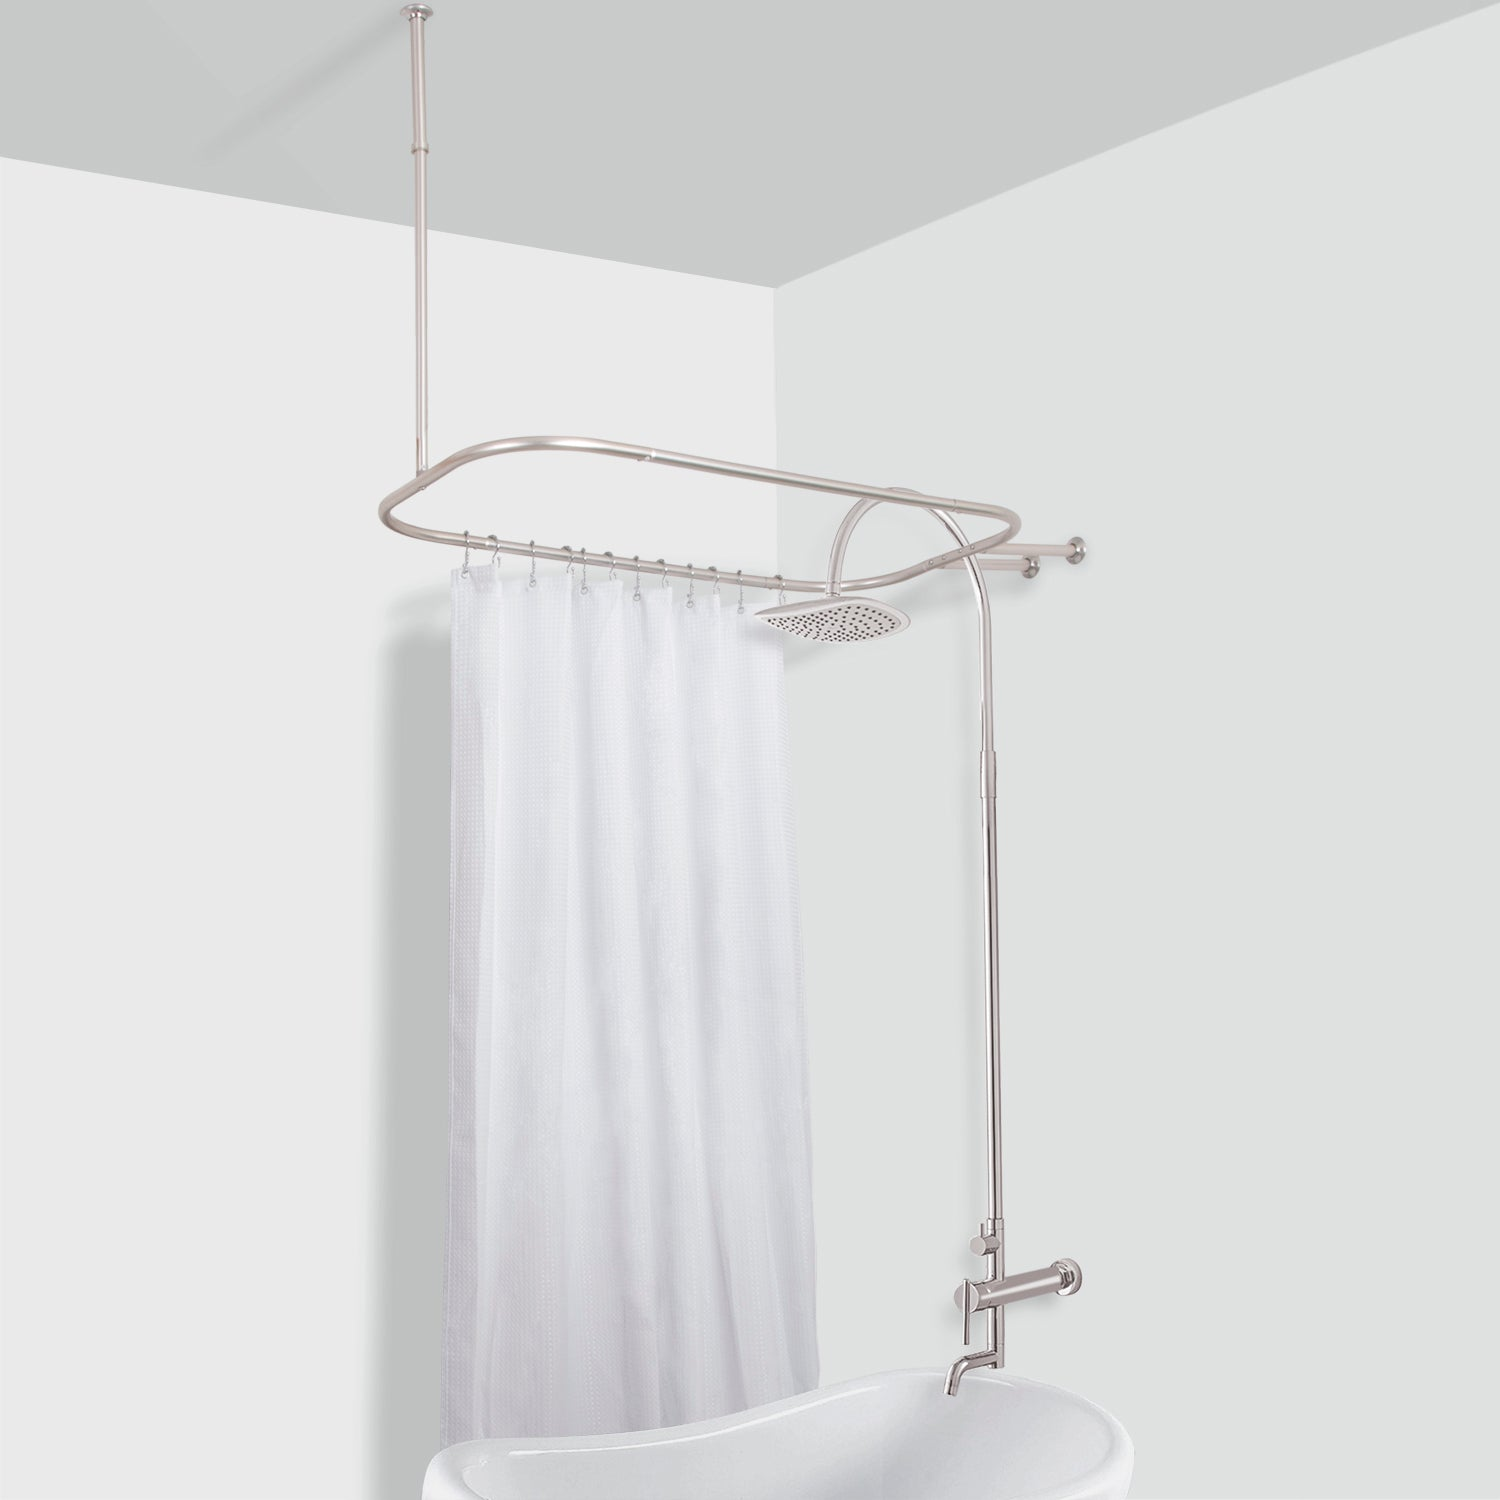 Superieur Rustproof Hoop Shower Rod For Clawfoot Tub